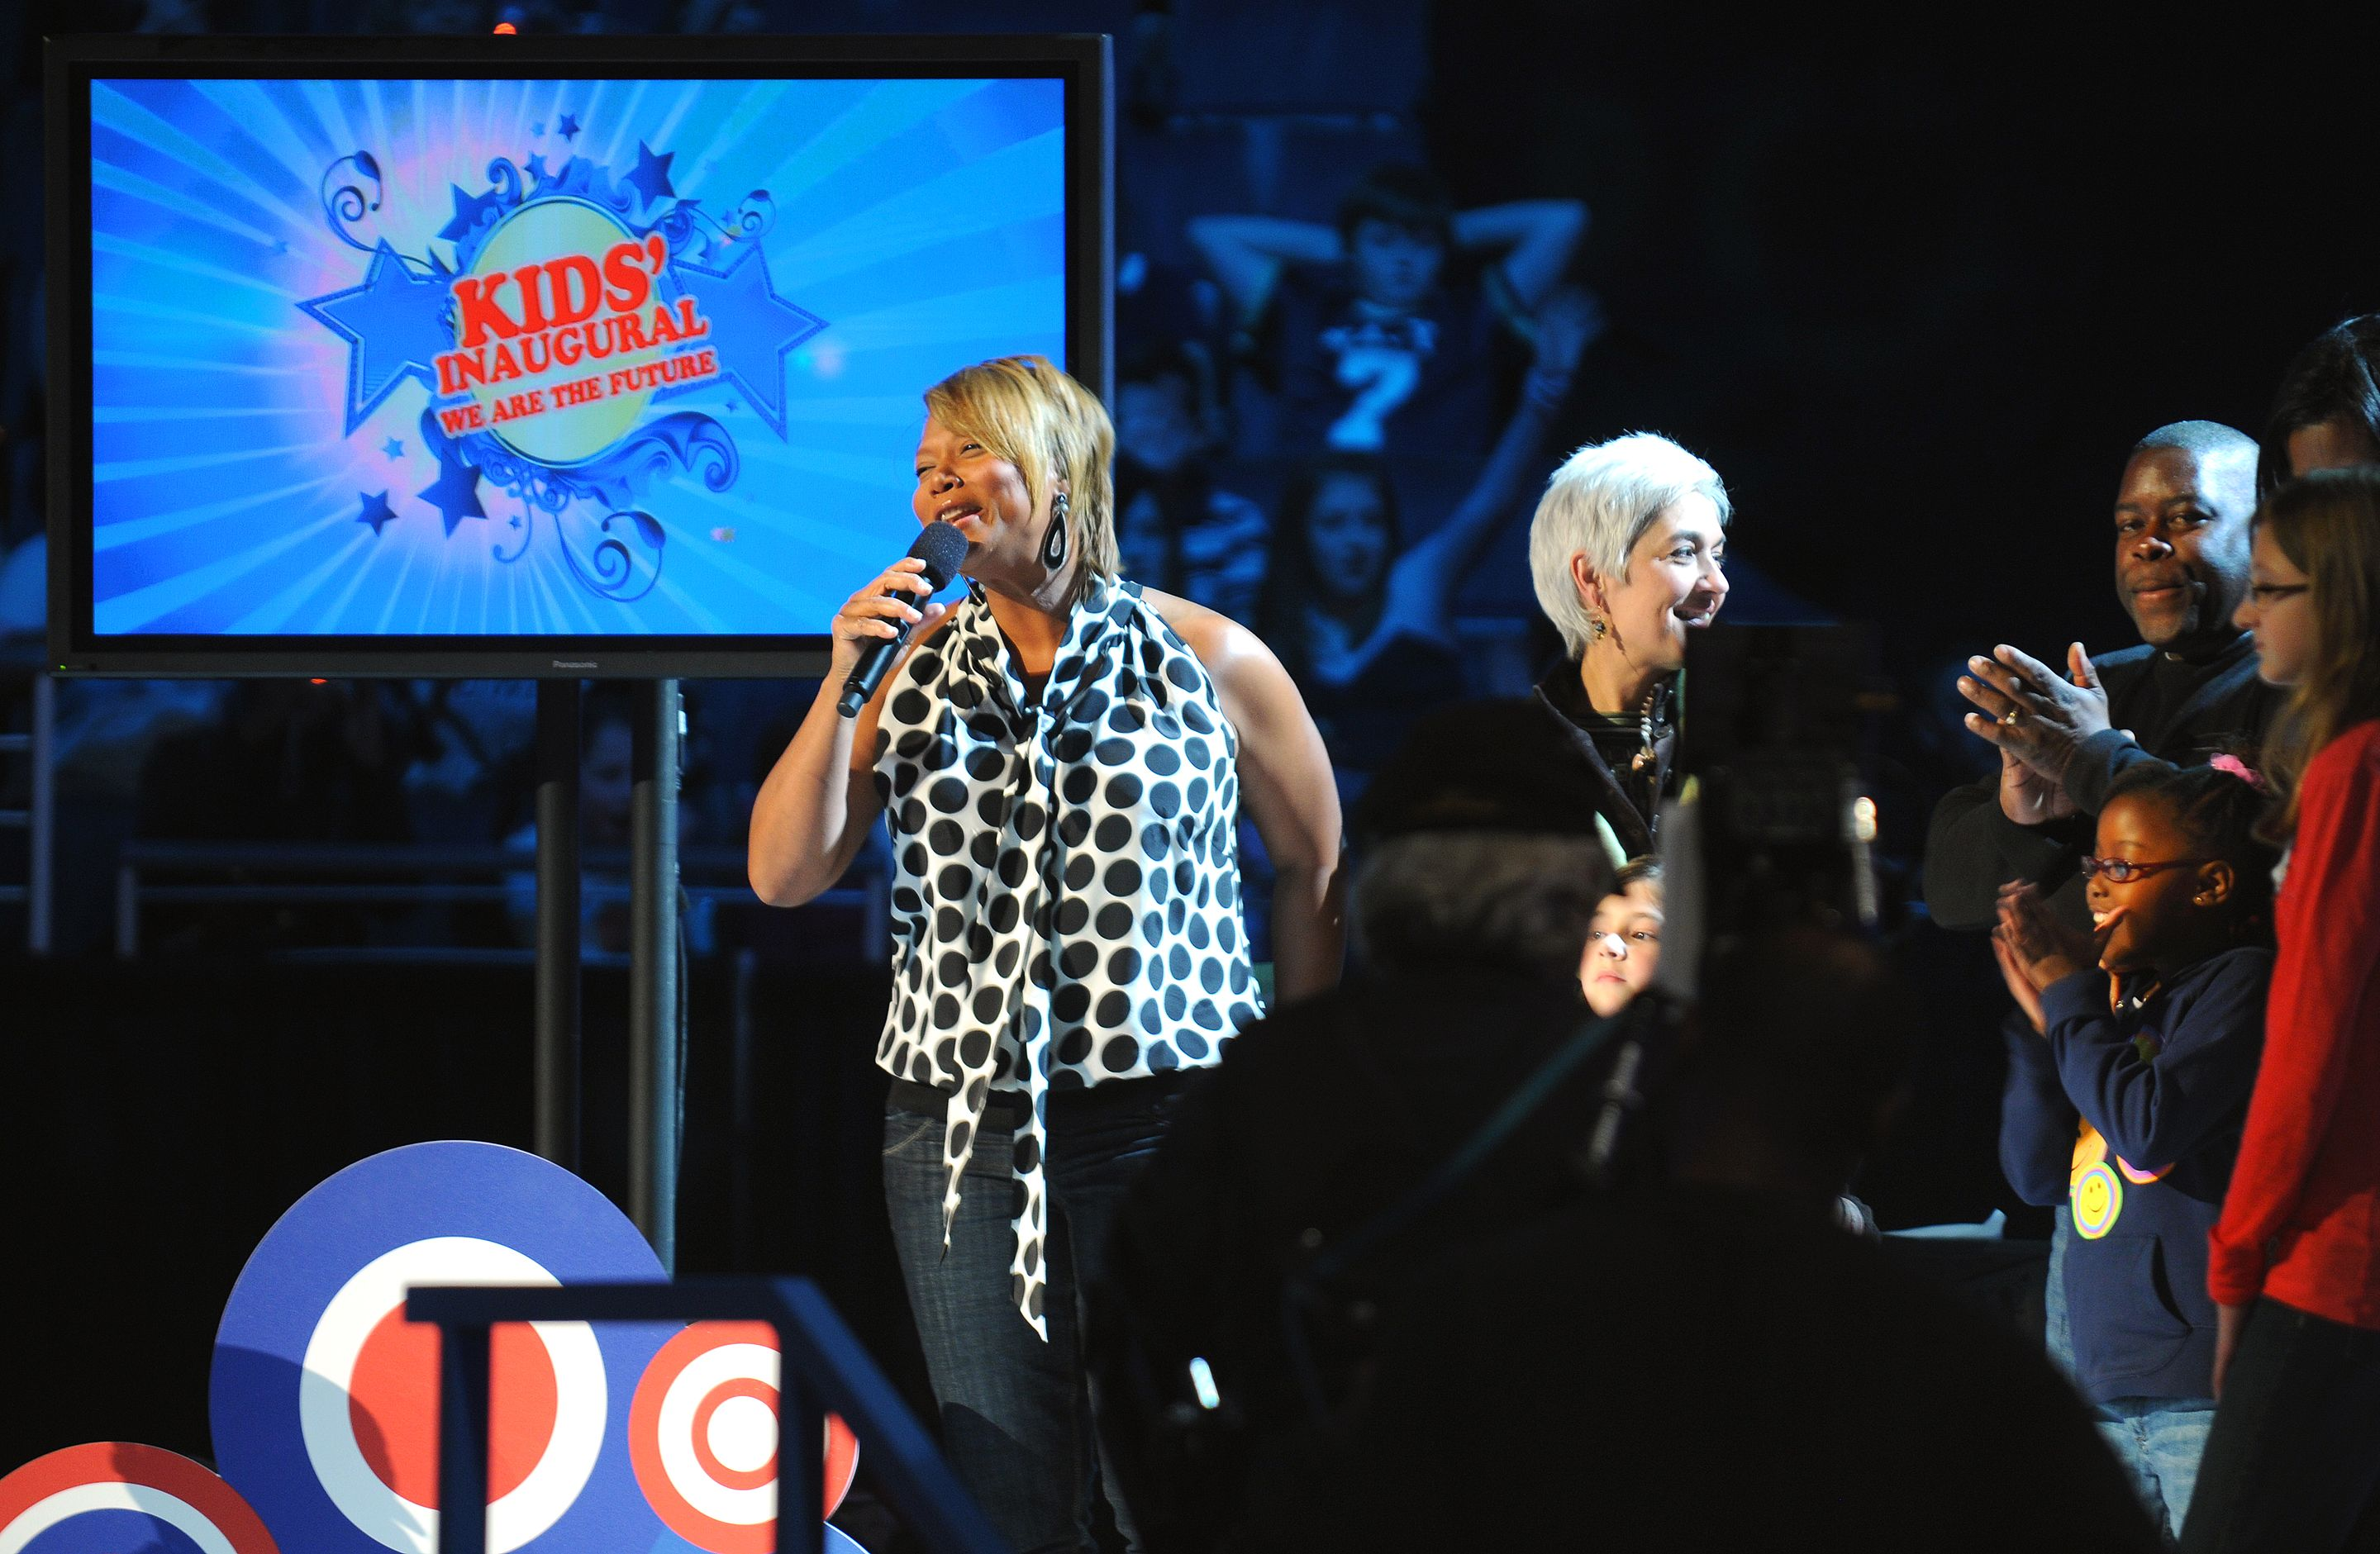 """Queen Latifah performing at the """"Kids Inaugural: We Are the Future"""" concert in 2009. Photo by U.S. Navy Petty Officer 1st Class Mark O'Donald. Wikipedia Commons."""